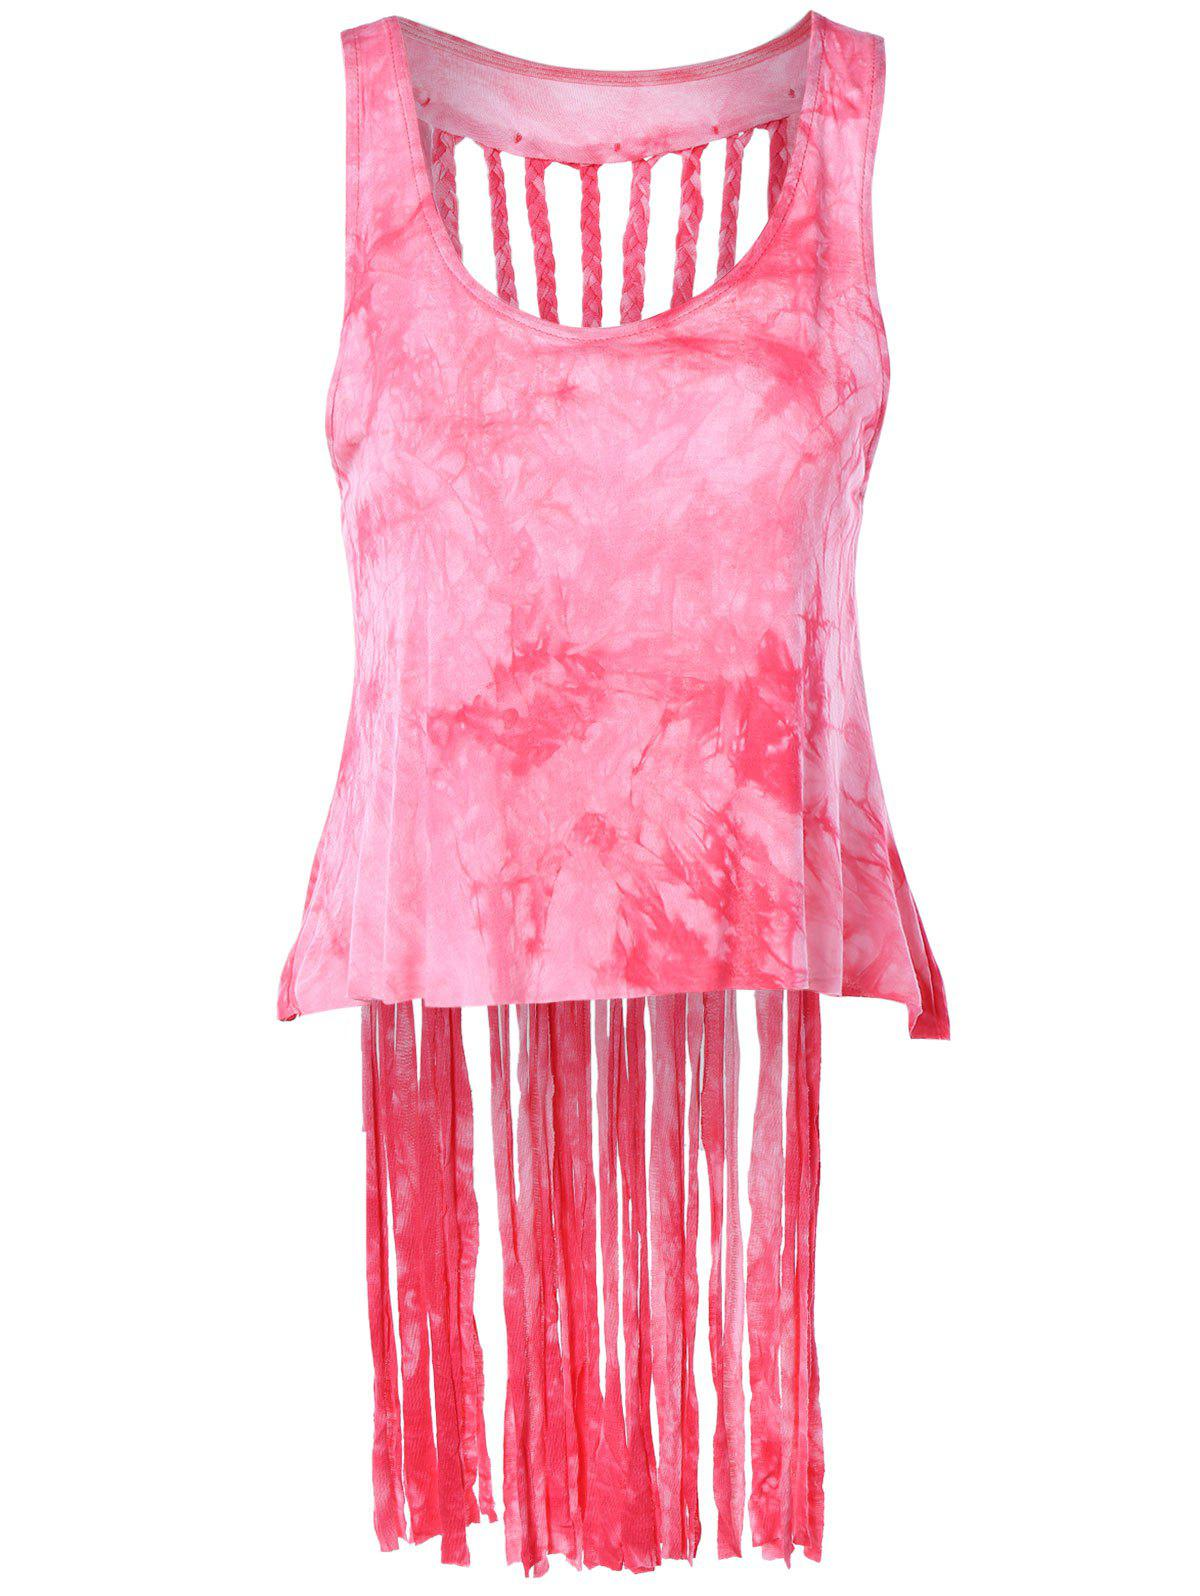 Stylish Women's Scoop Neck Weave Fringe Tank Top - ONE SIZE(FIT SIZE XS TO M) ROSE